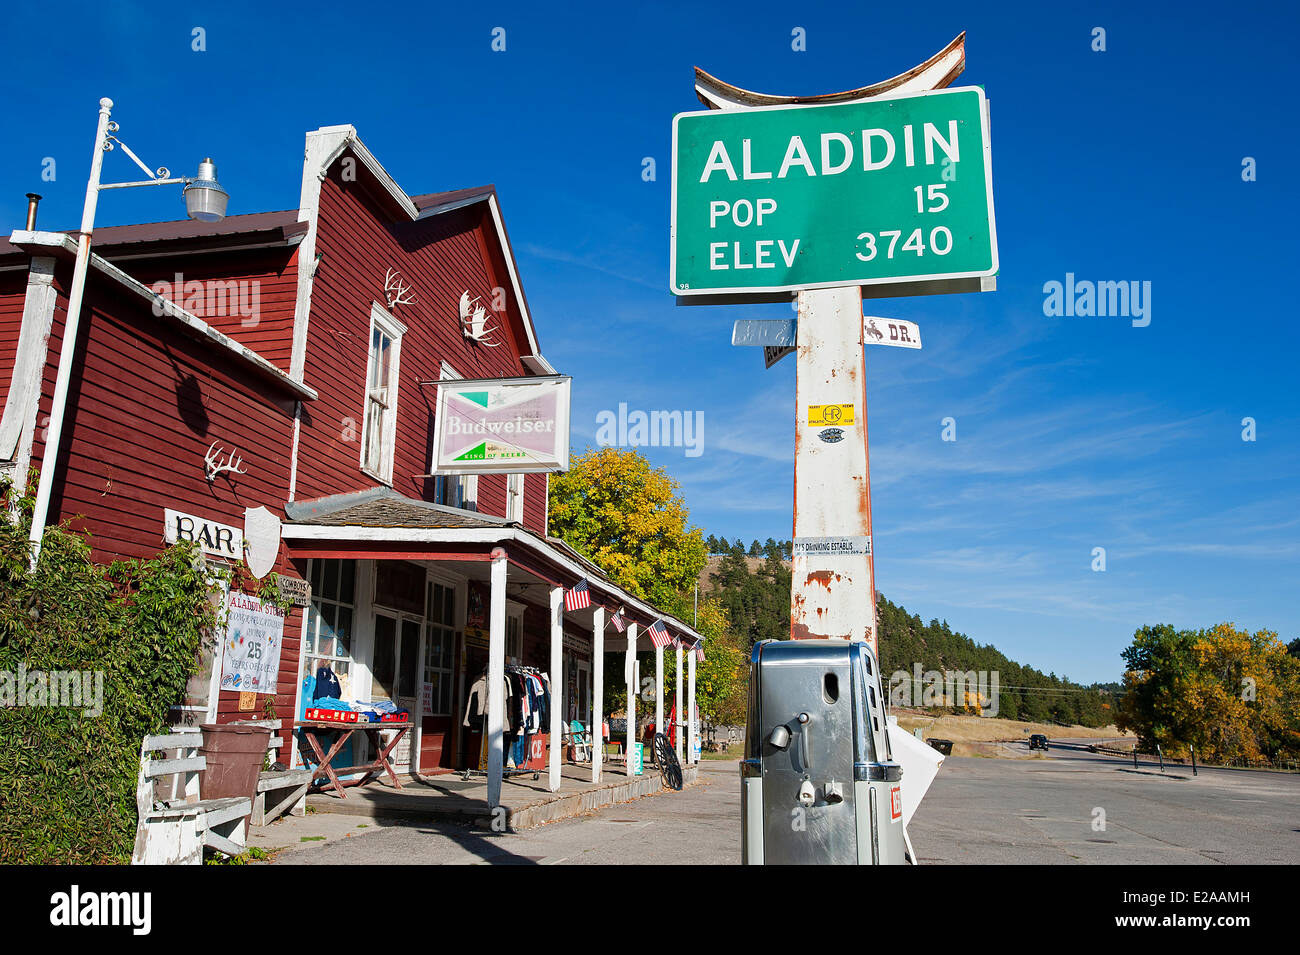 United States, Wyoming, Aladdin, the smallest village in the West with a population of 15 - Stock Image